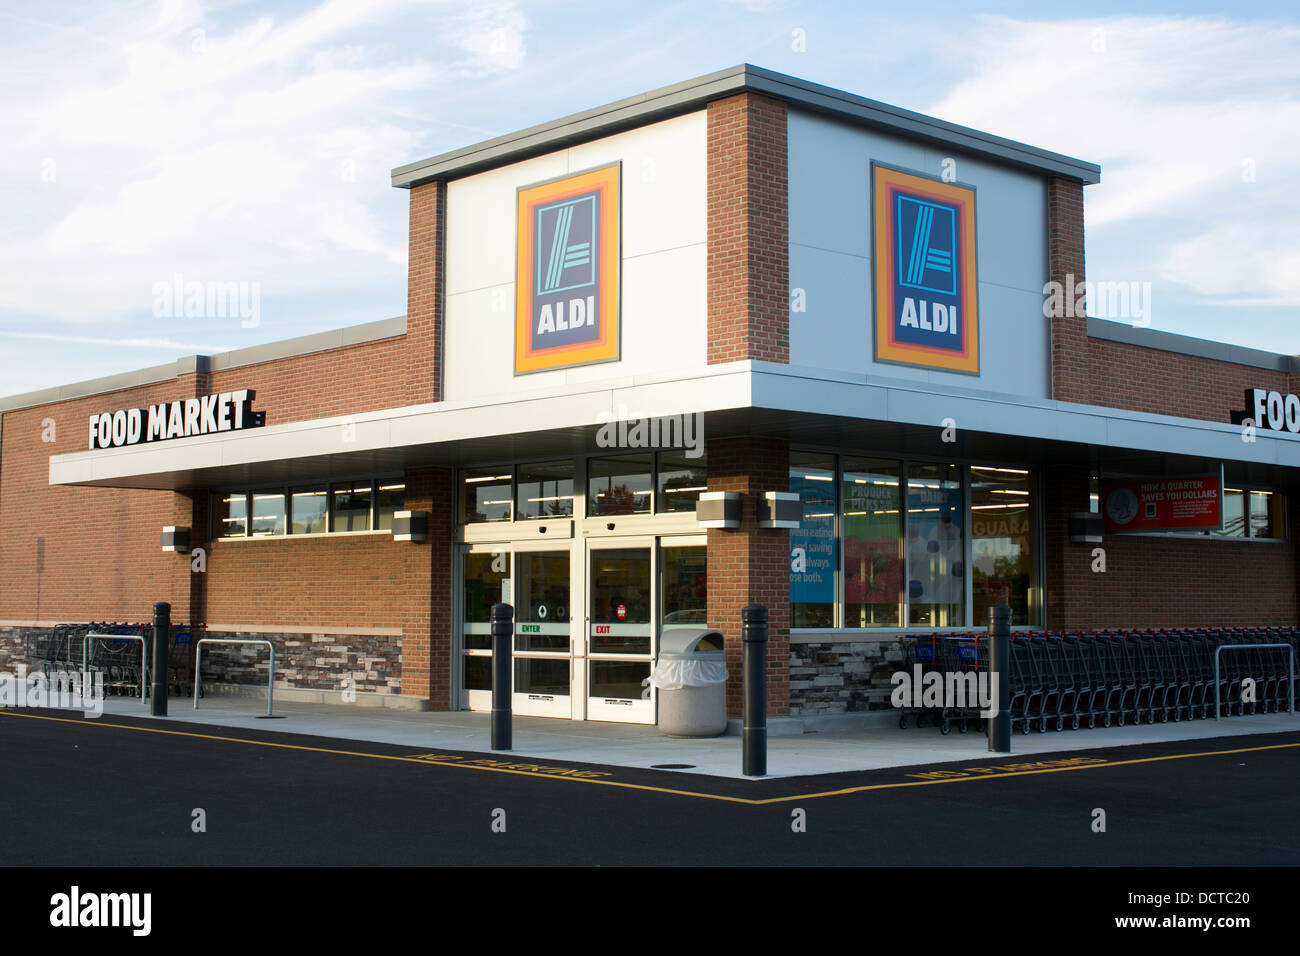 An Aldi discount grocery store.  Stock Photo